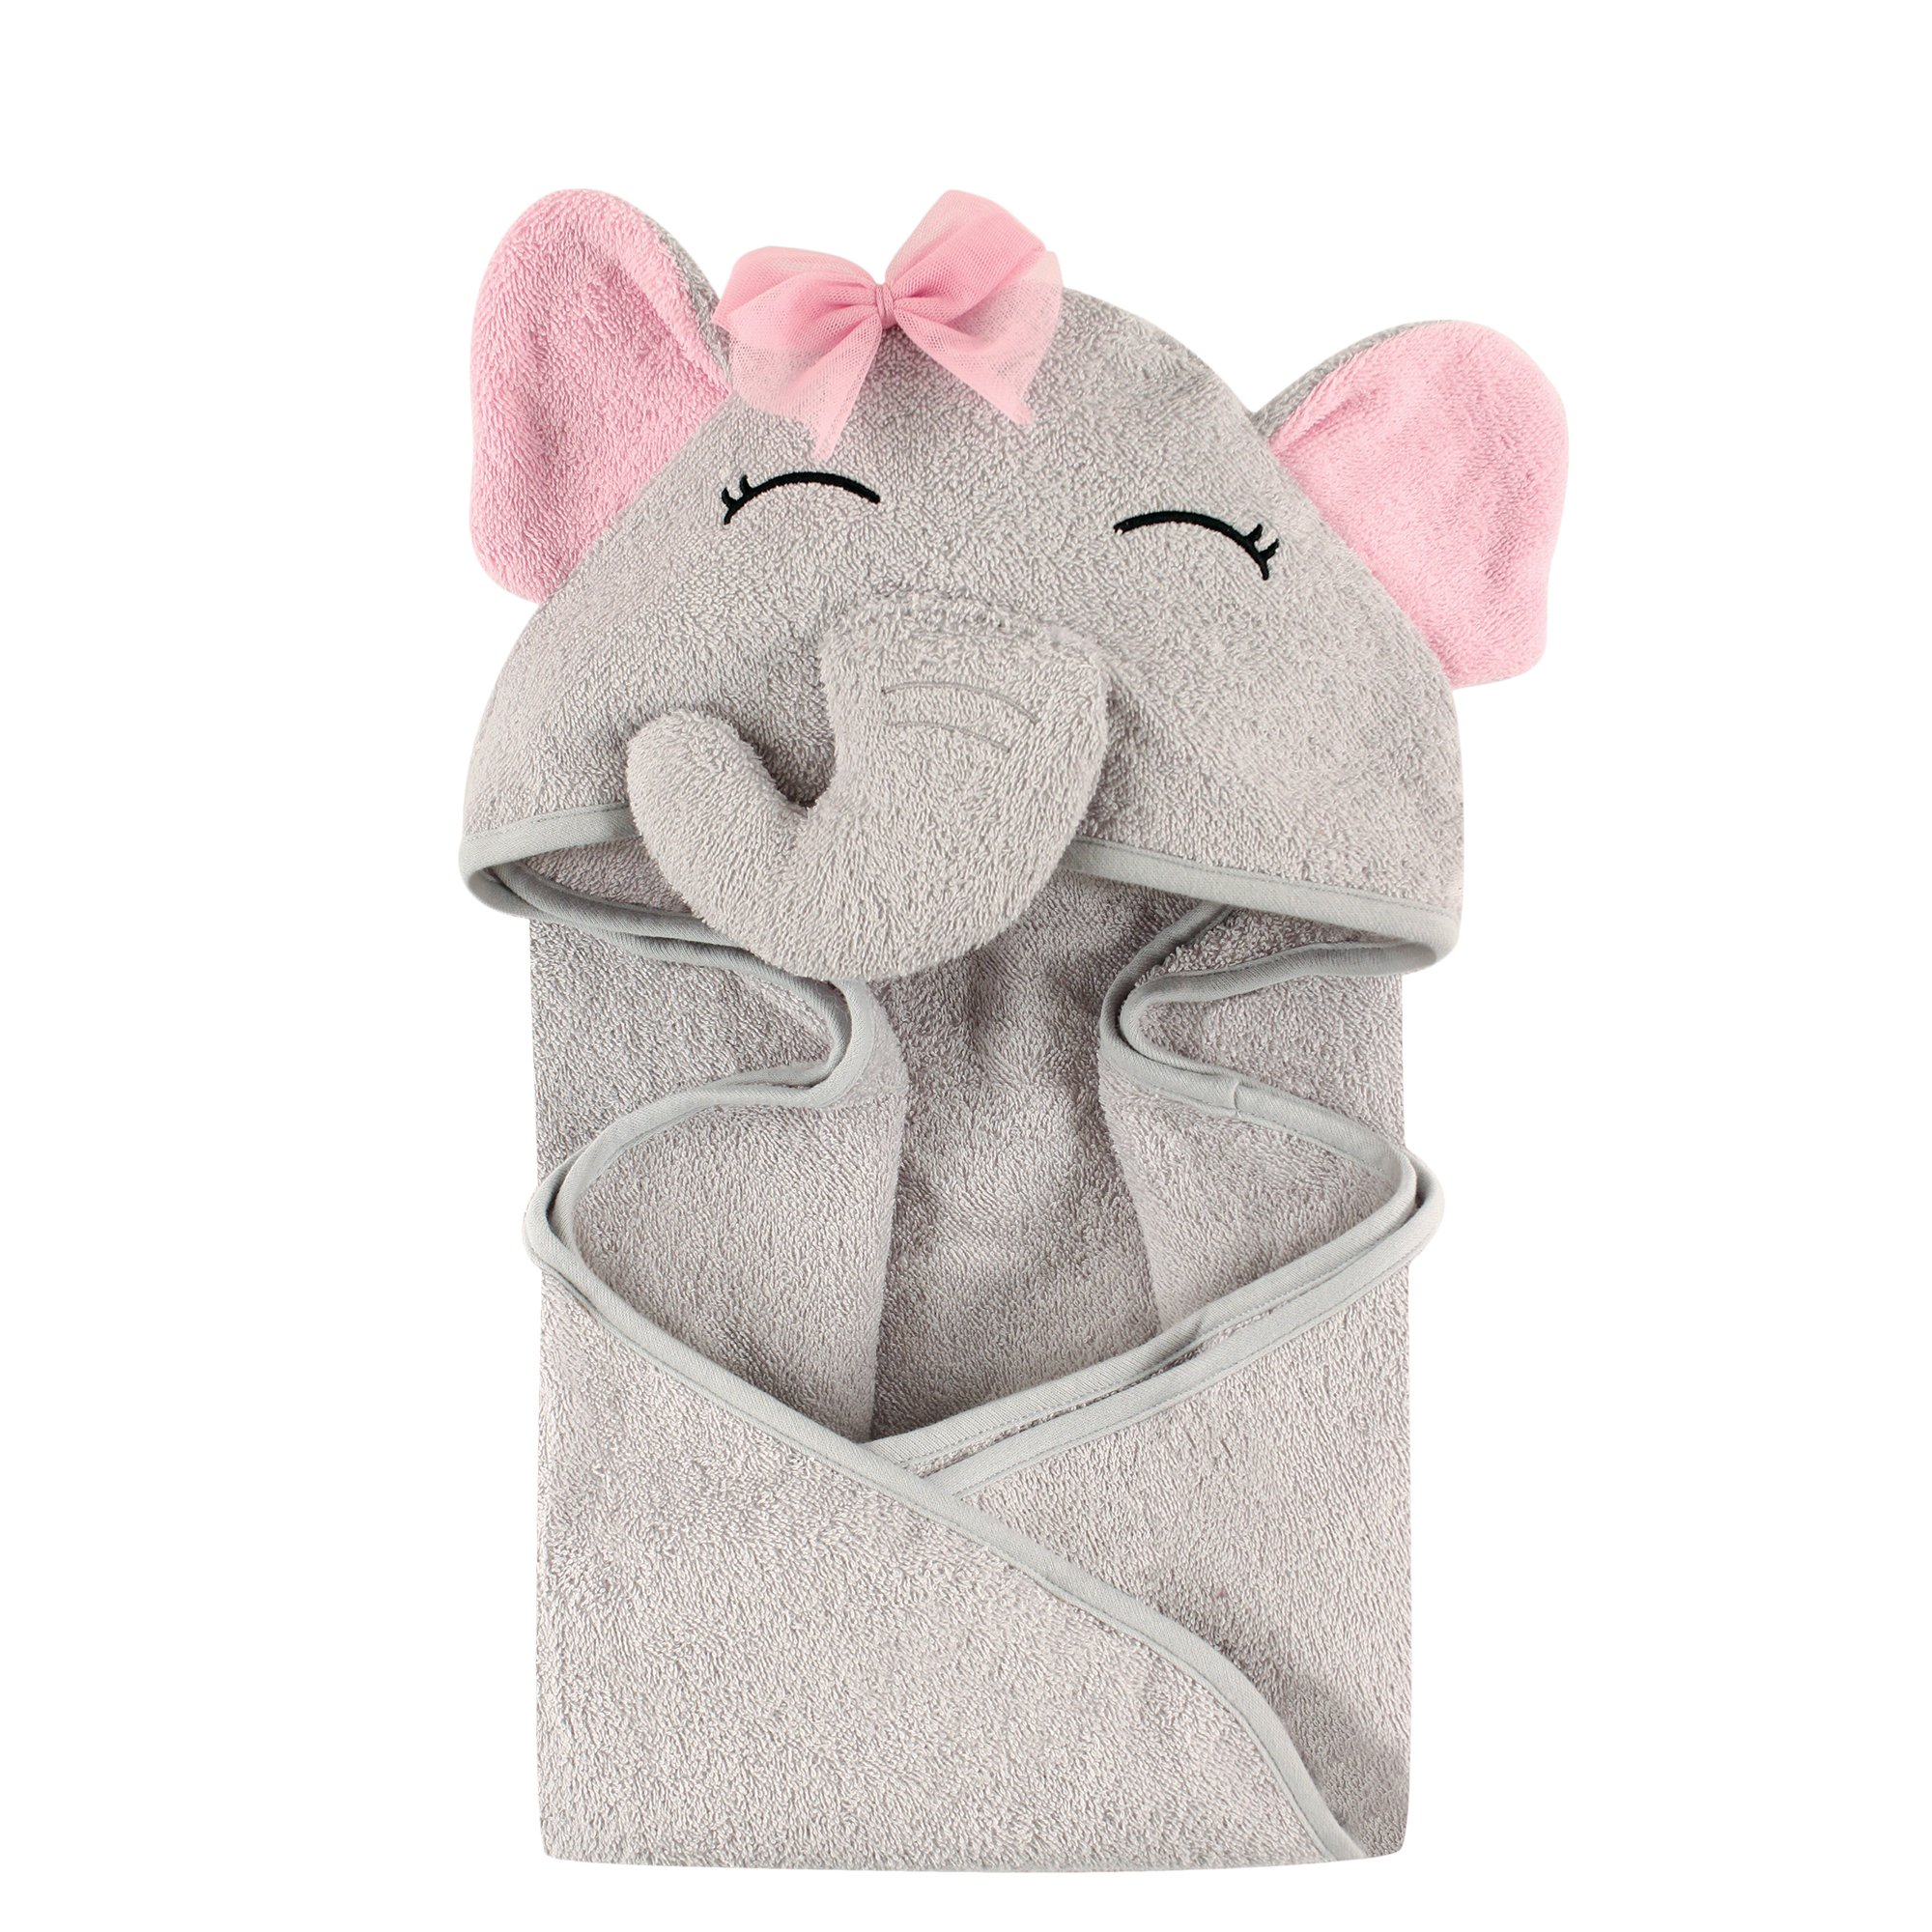 Hudson Baby Animal Face Hooded Towel, Girl Elephant by Hudson Baby (Image #1)